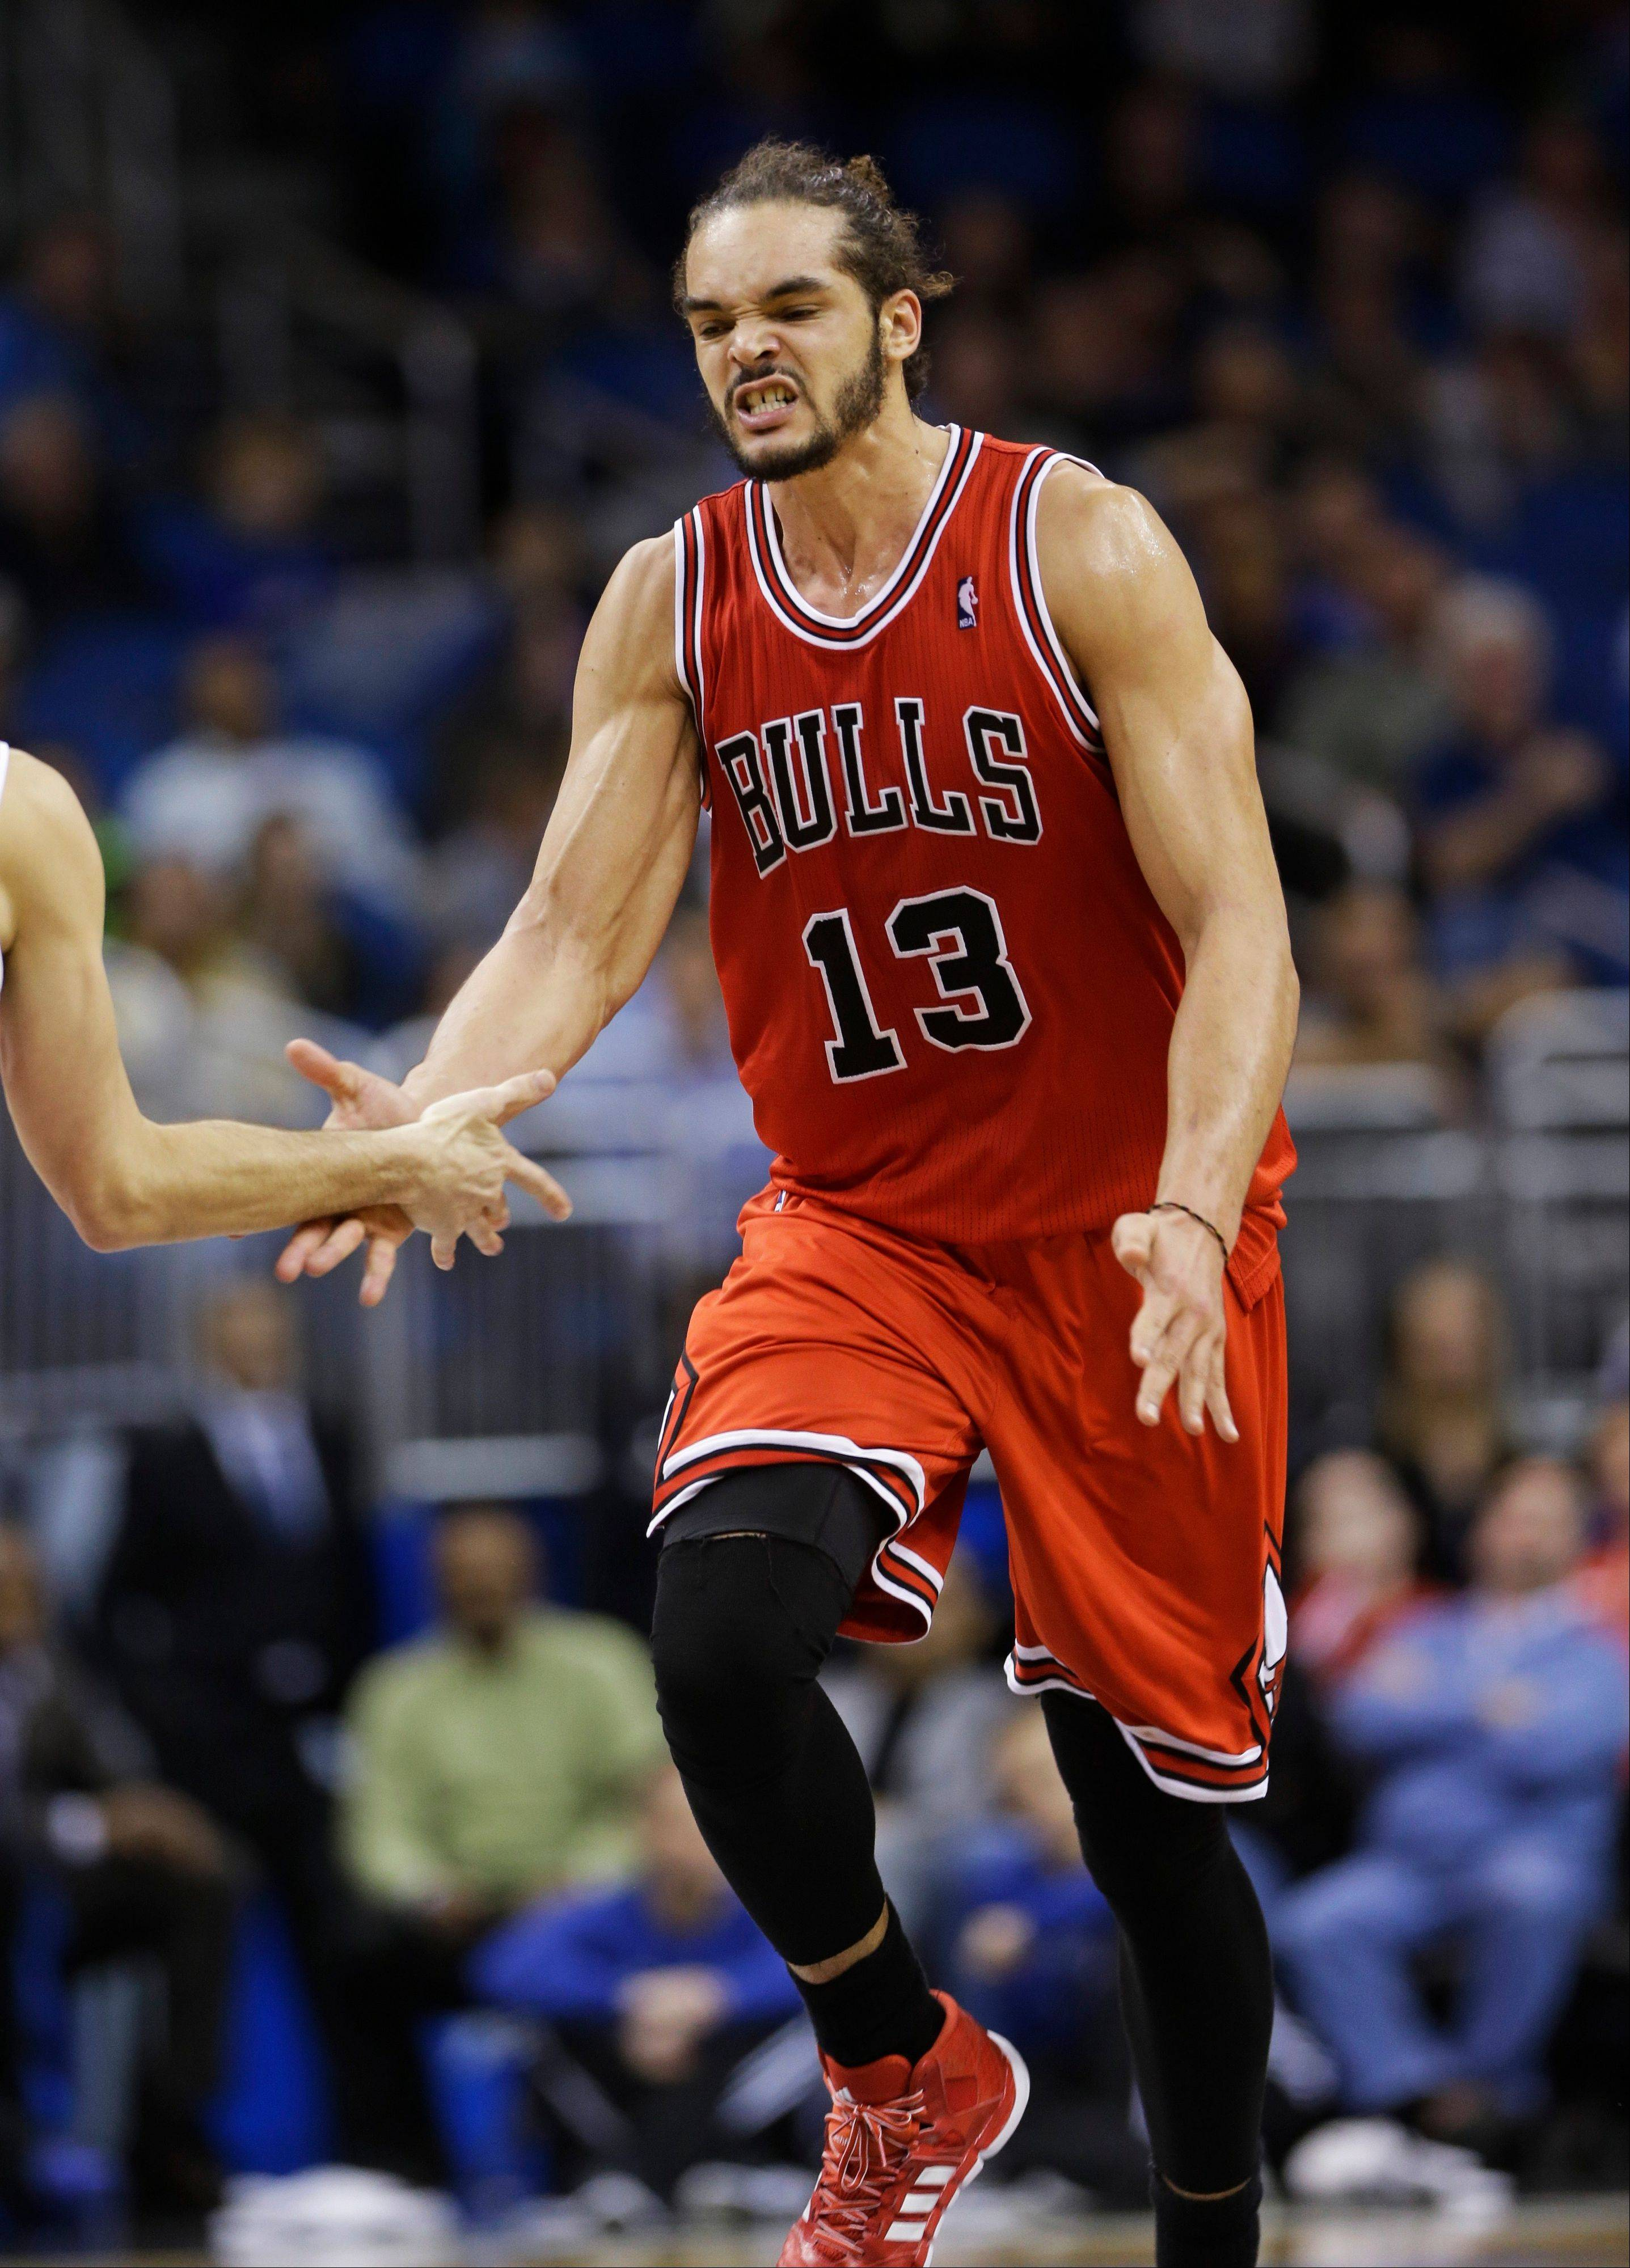 There are many reasons lately for why Bulls center Joakim Noah has been charged up. The Bulls have won 10 of their last 14 games, and Noah is the biggest reason for that.